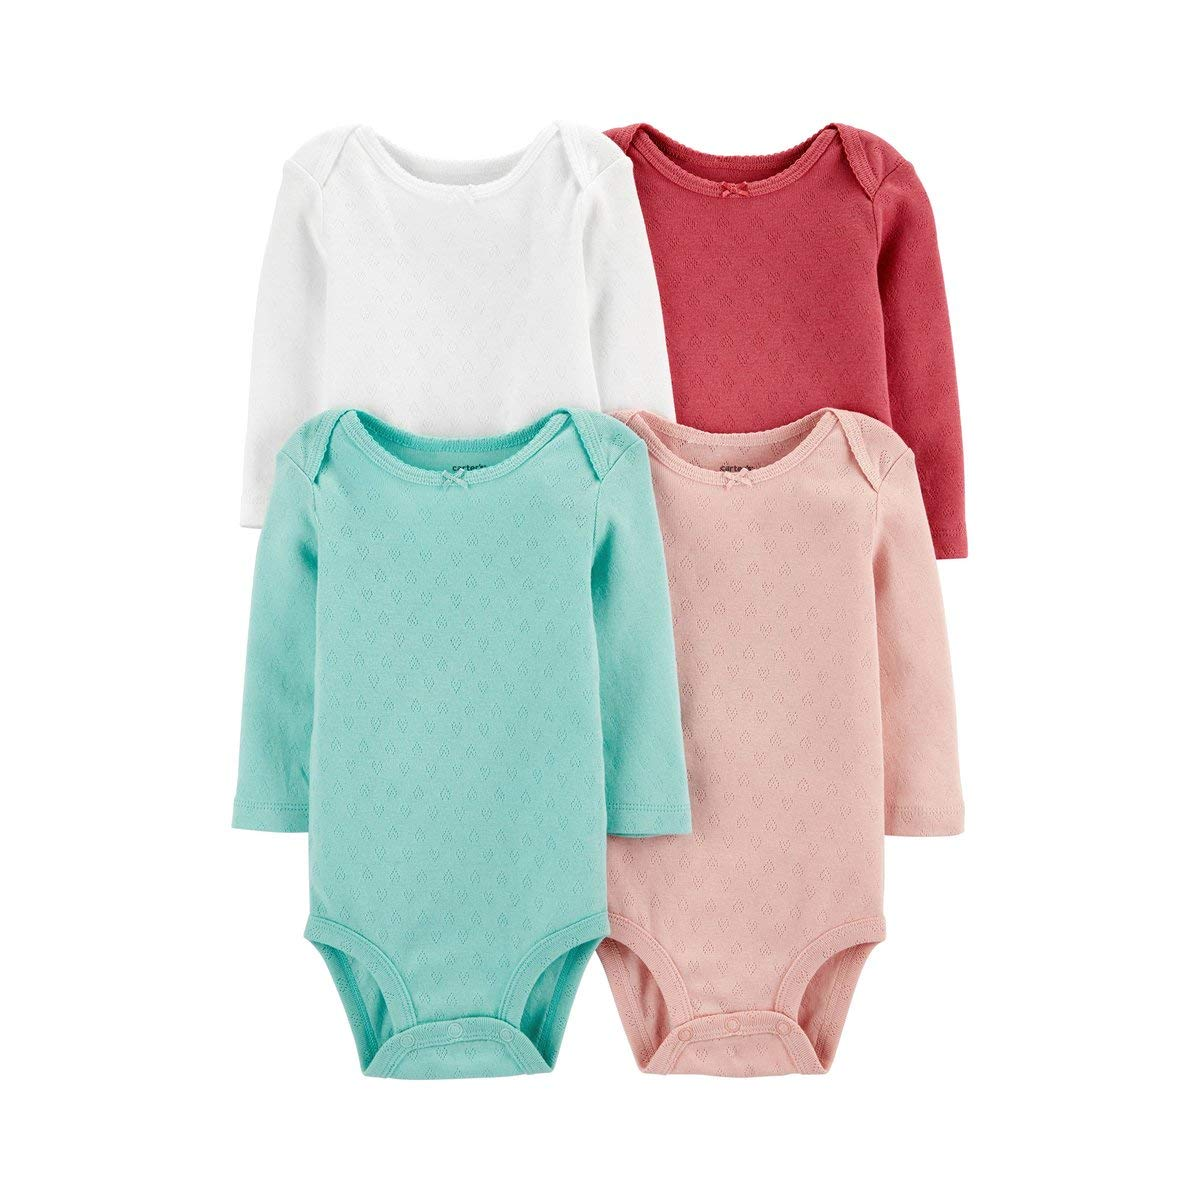 Carter's Baby 4 Pack Long Sleeve Bodysuit Set, Girls Solid, 6 Months